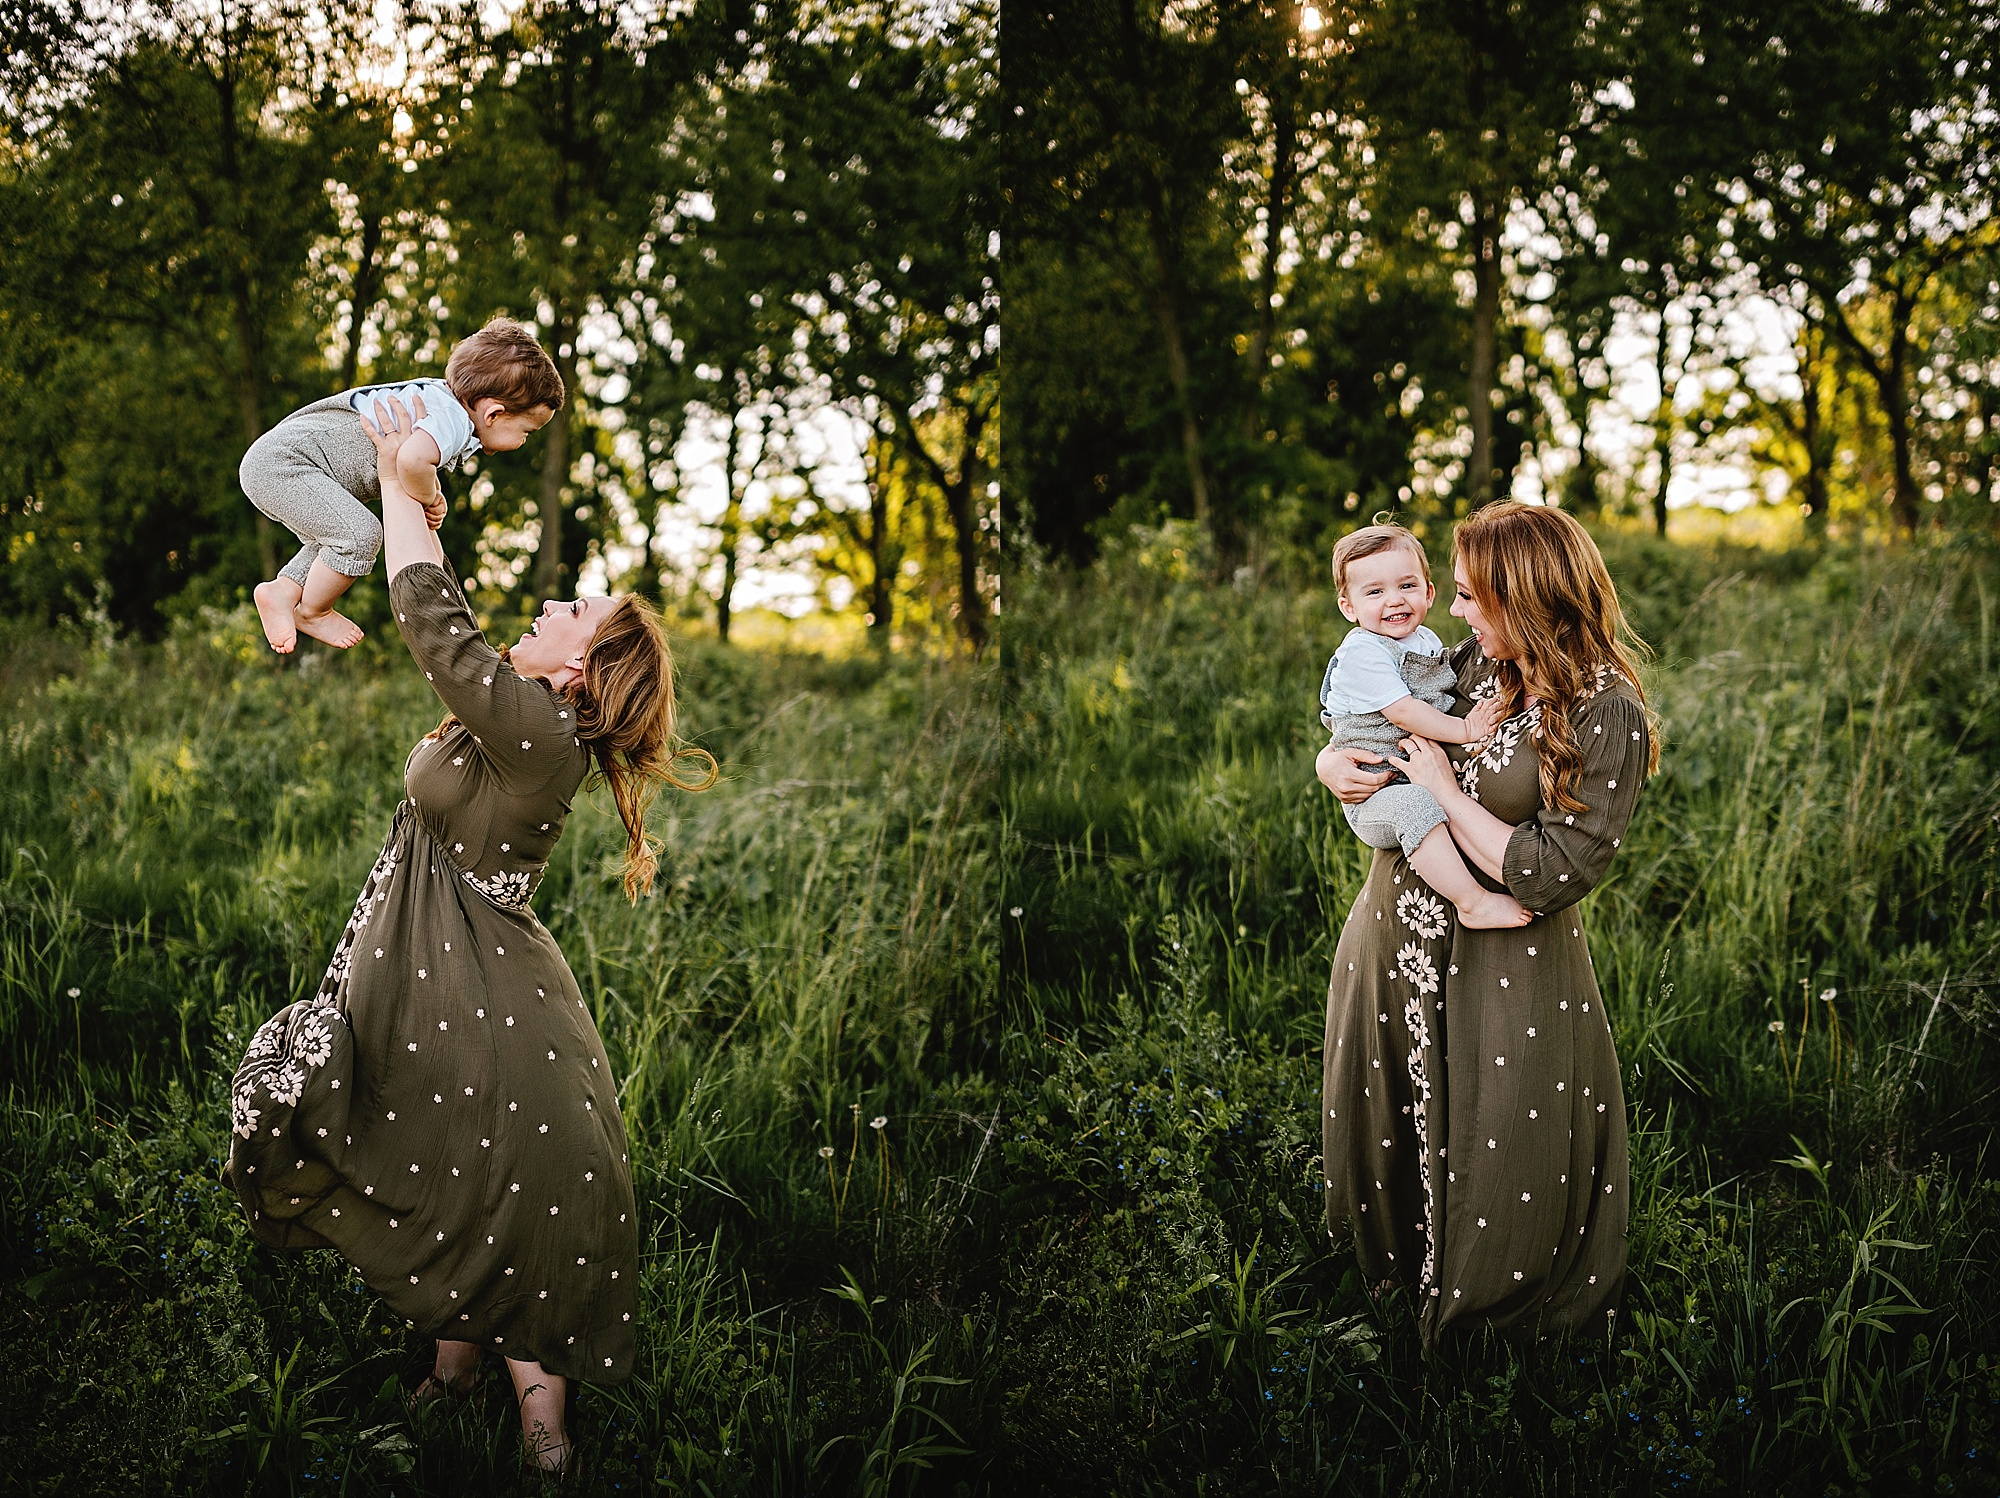 lauren-grayson-photography-cleveland-ohio-photographer-summer-outdoor-fields-family-child-baby-photo-session_0524.jpg